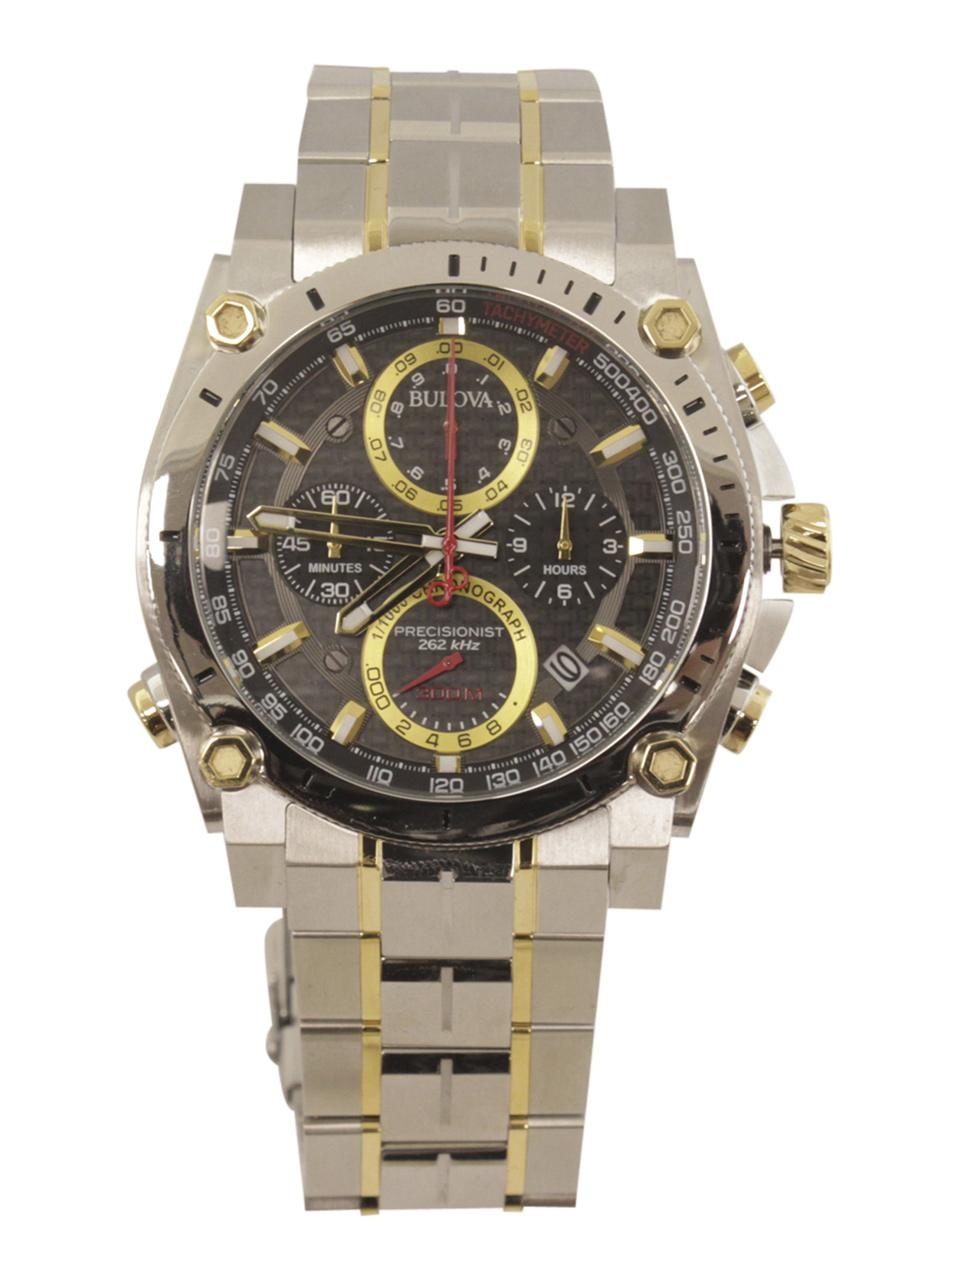 Image of Bulova Men s Precisionist 98B228 Two Tone Silver Gold Chronograph Analog Watch